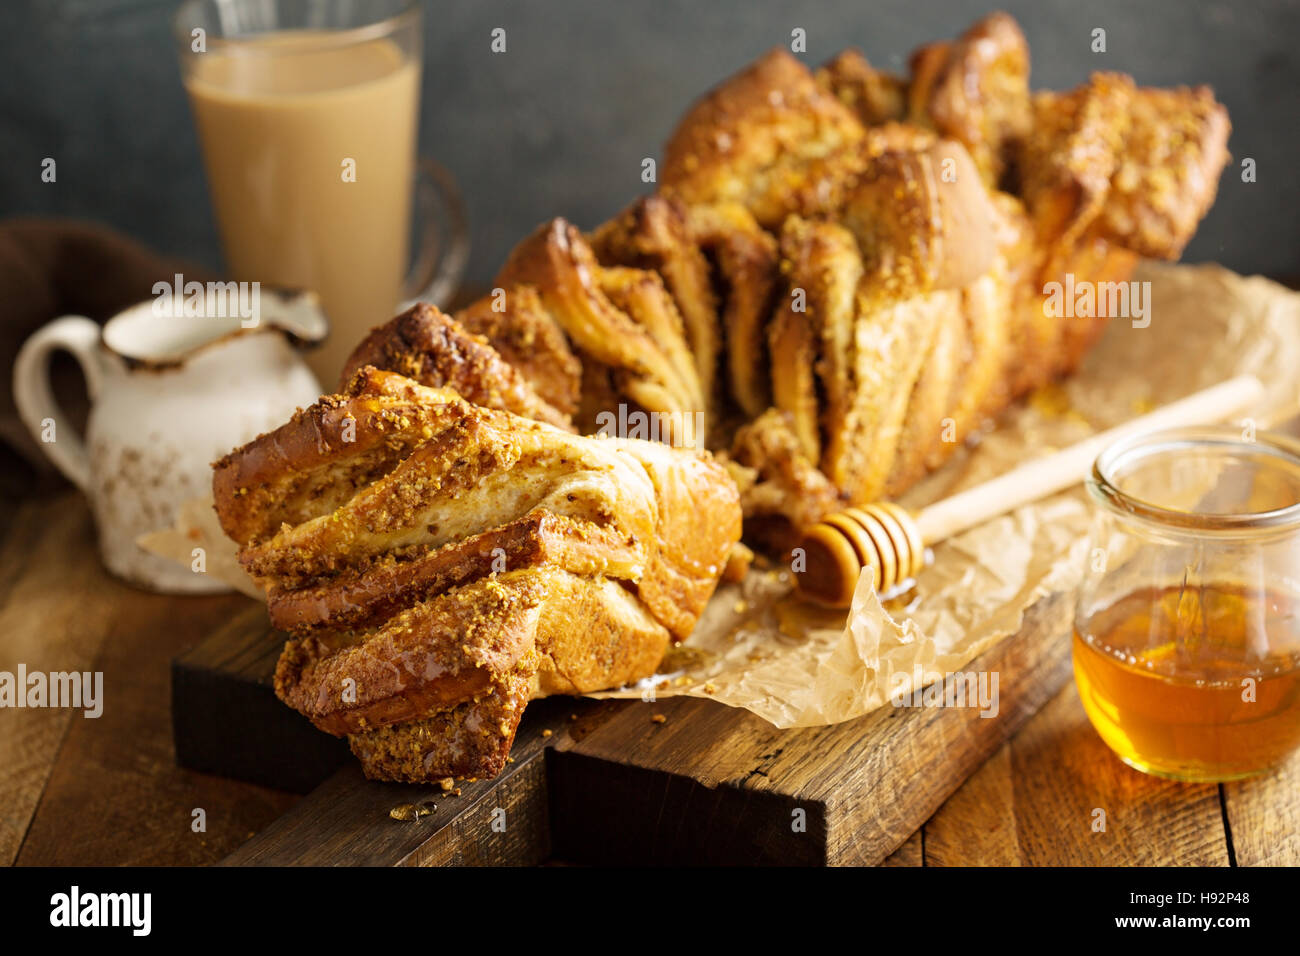 Honey and nuts pull-apart bread - Stock Image